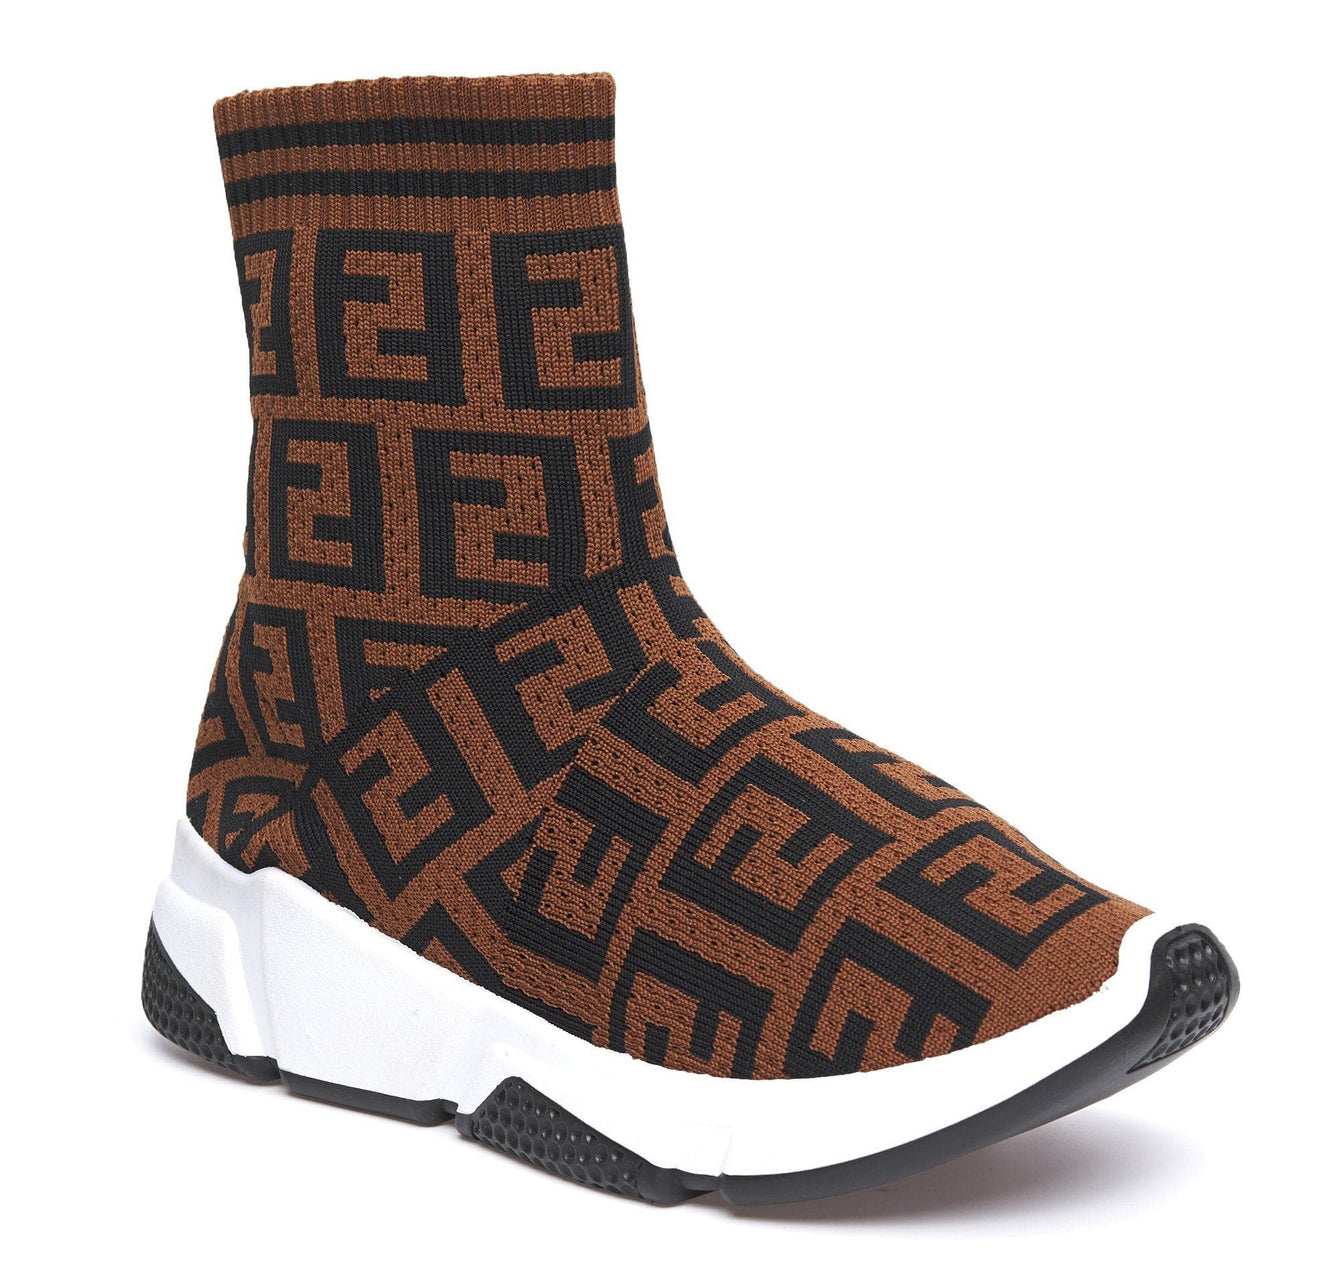 Sarra Letter Design Sockboot in Brown